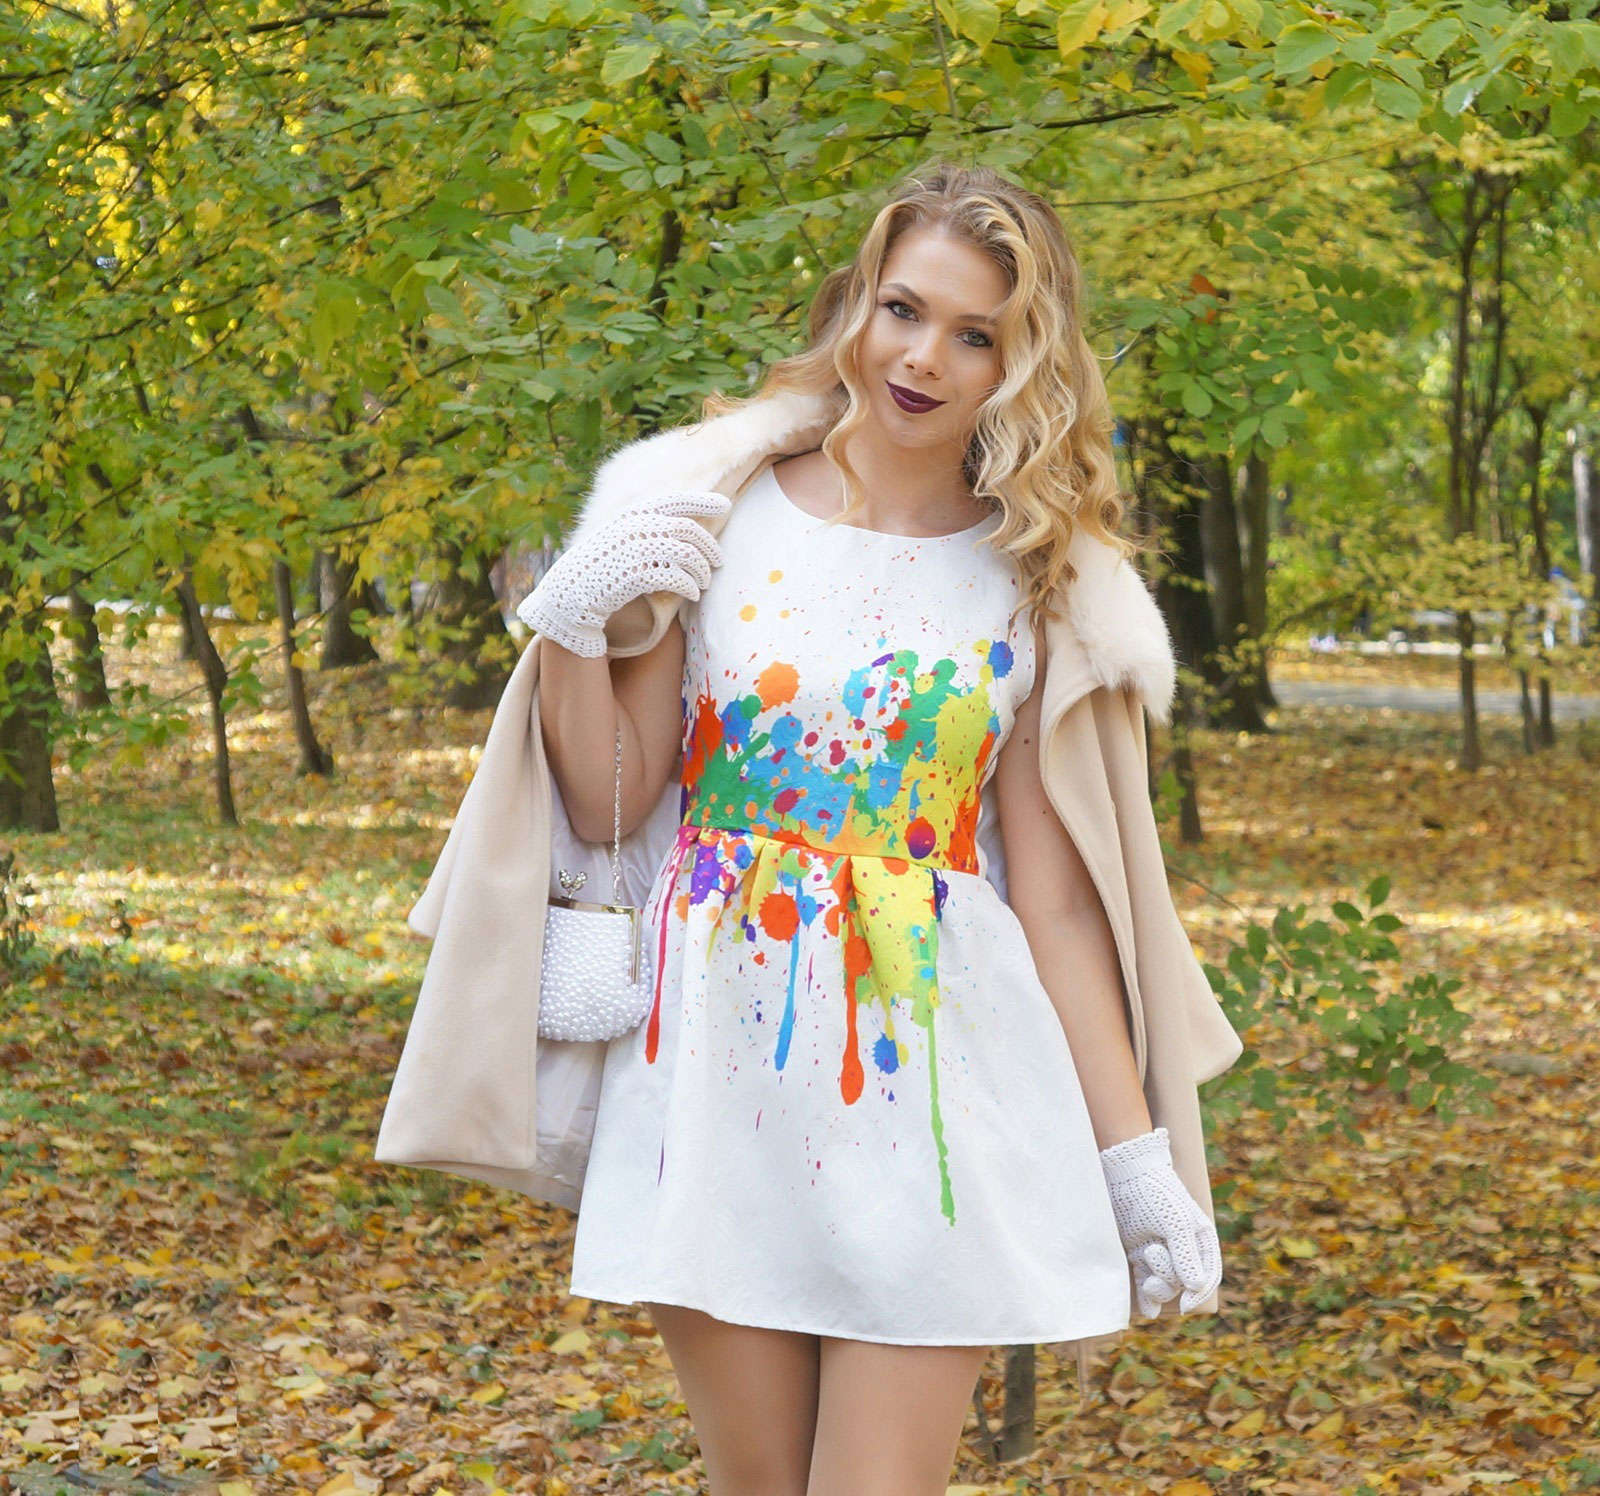 colorful-dress-autumn